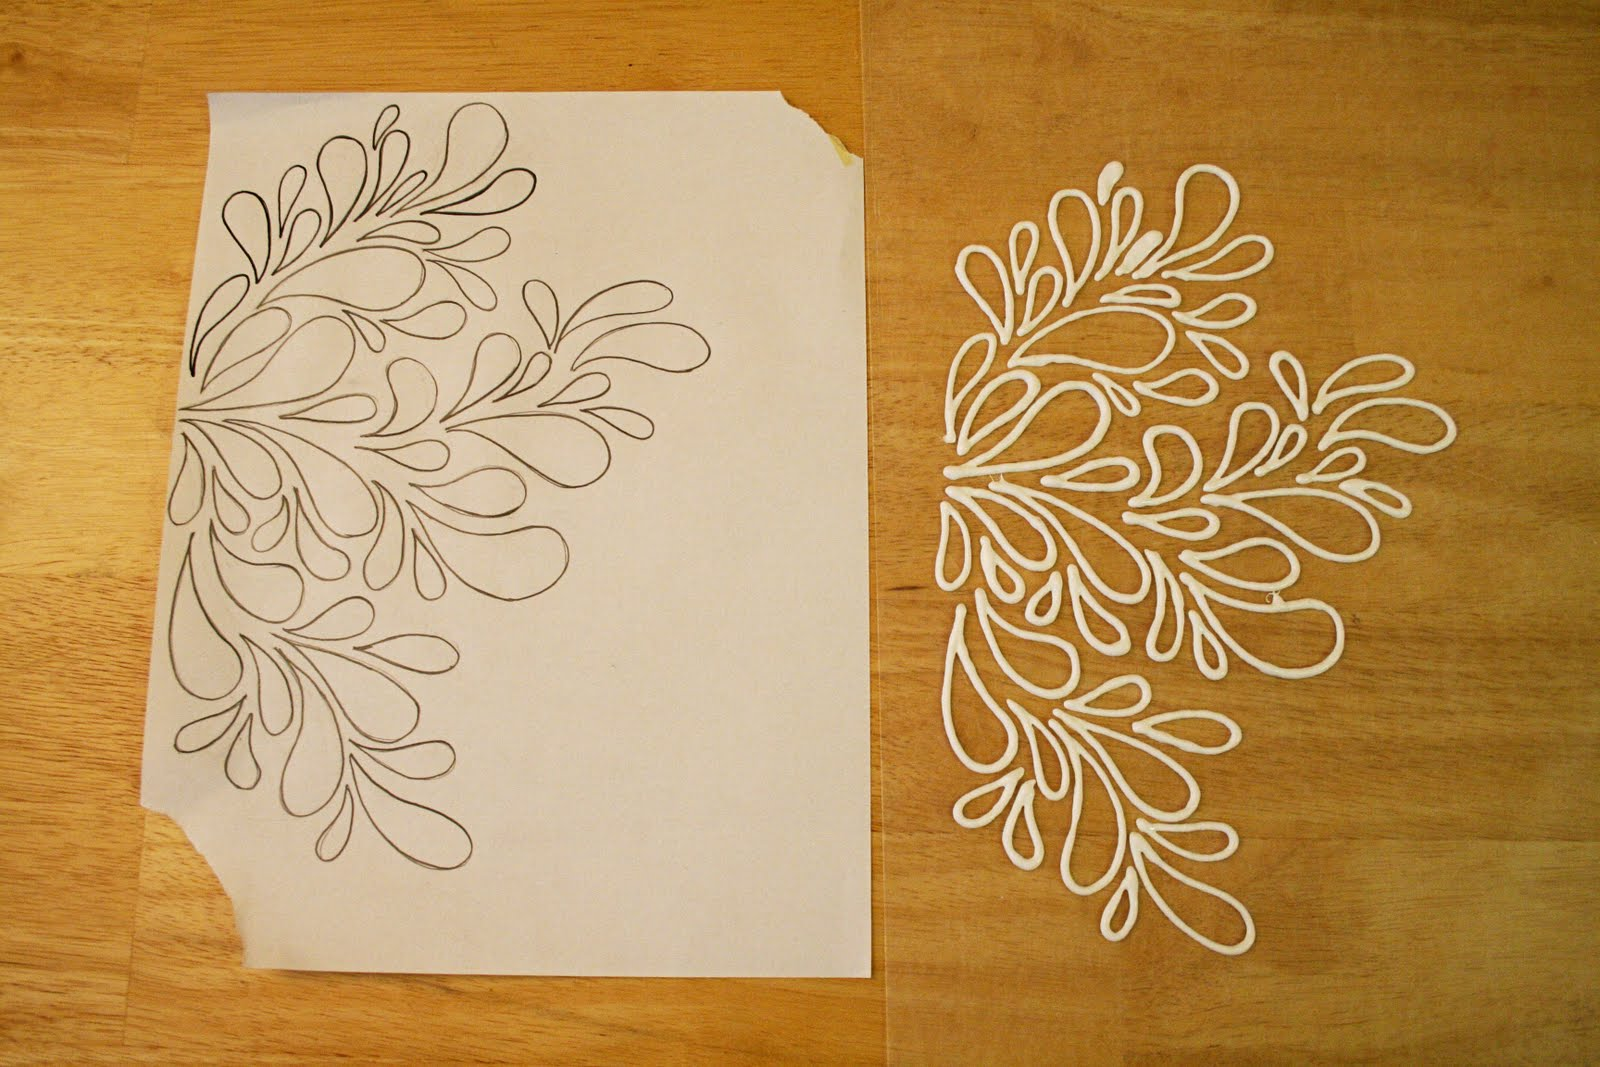 Puffy paint designs - I Drew My Own Pattern And Then Used Puffy Paint On Top Of Wax Paper To Draw It Out